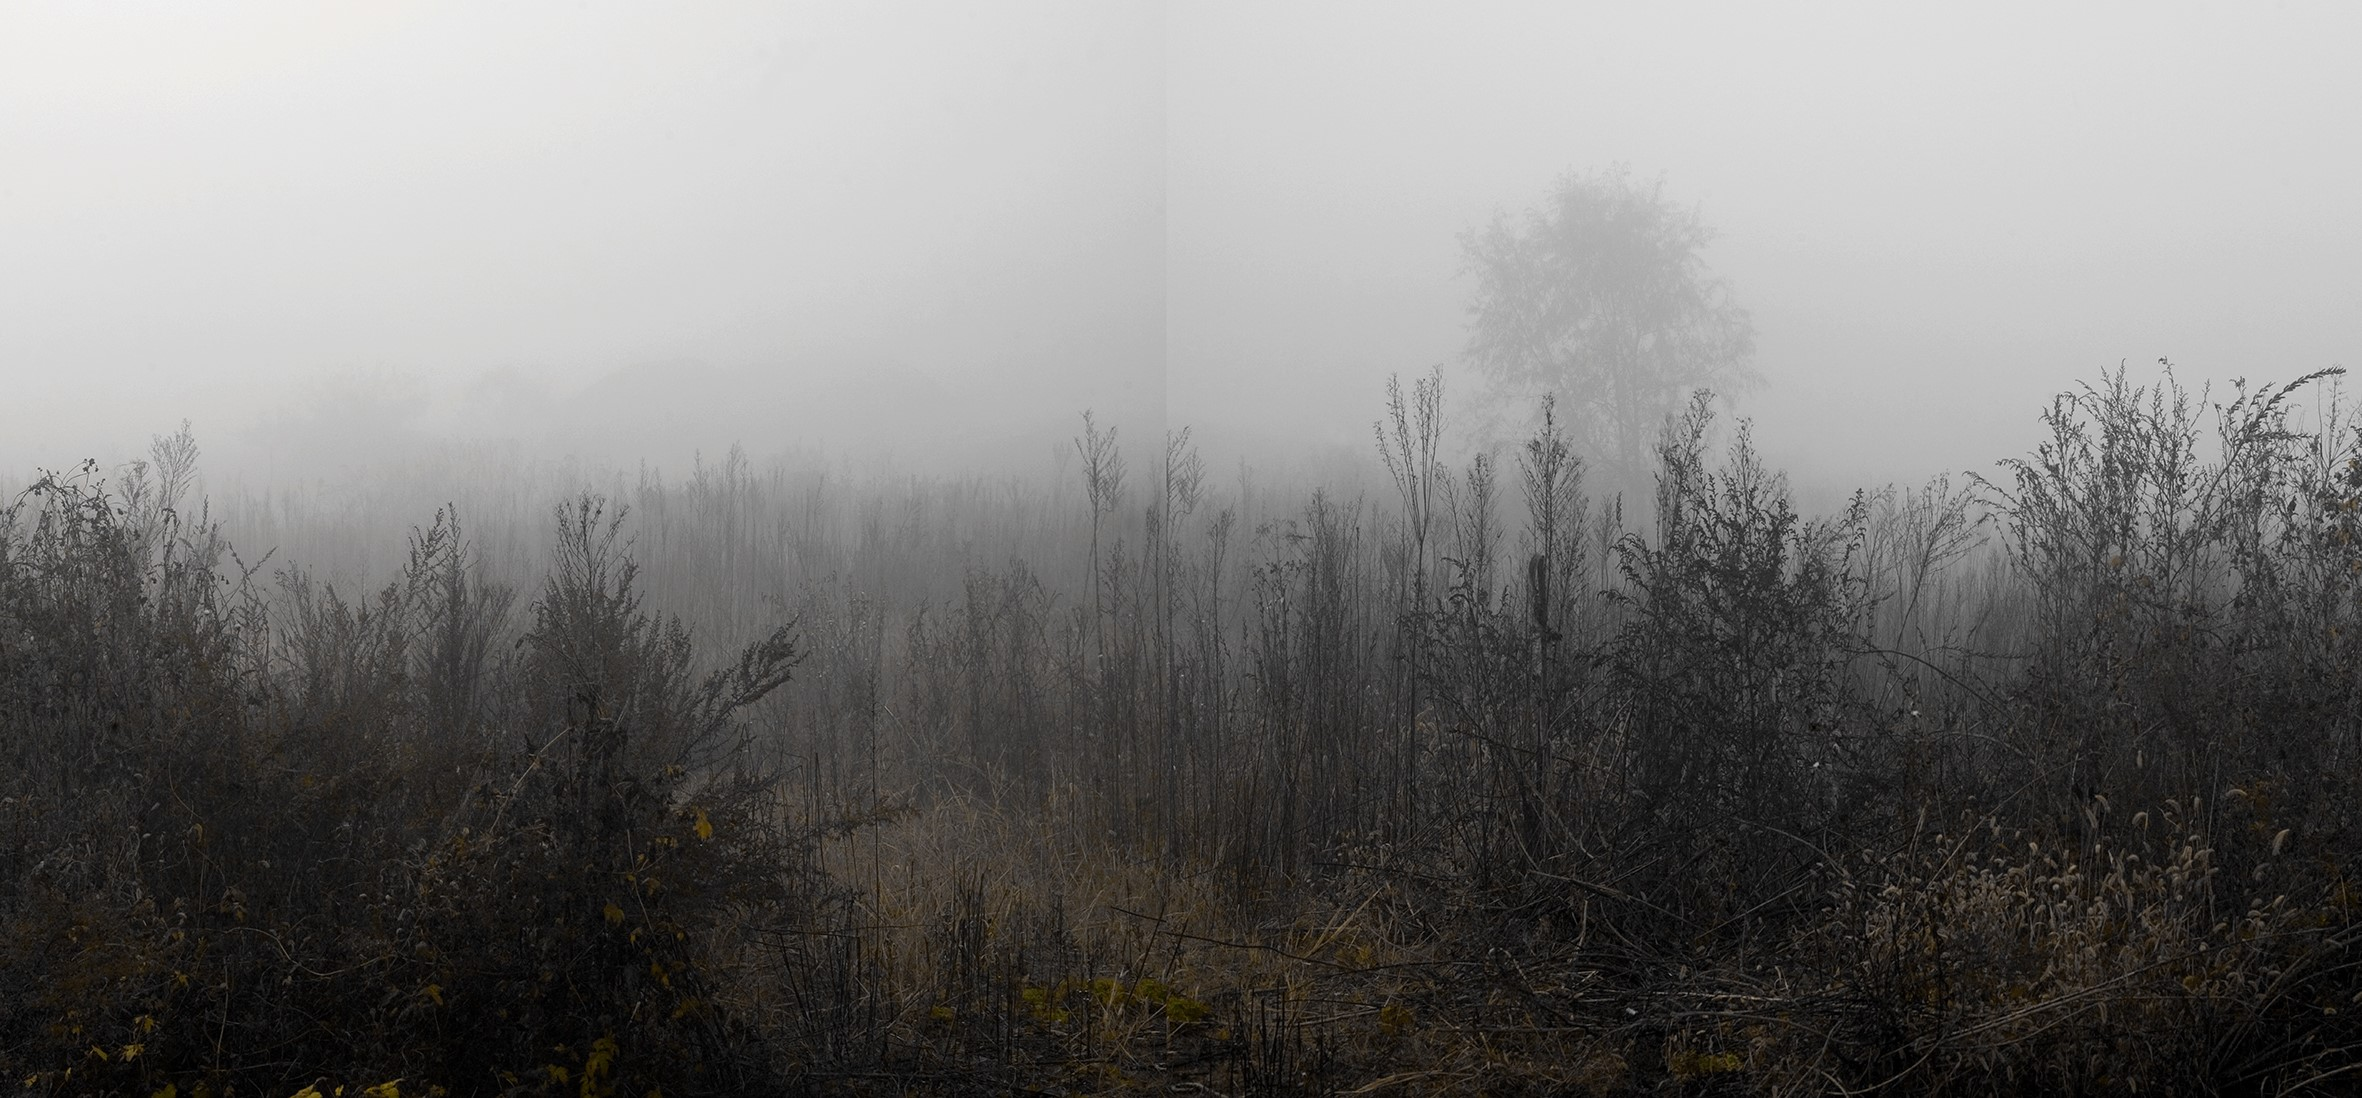 Honggoo Kang, Mist and Frost 38, Digital Print, 113x235.5cm, 2012, ONE AND J